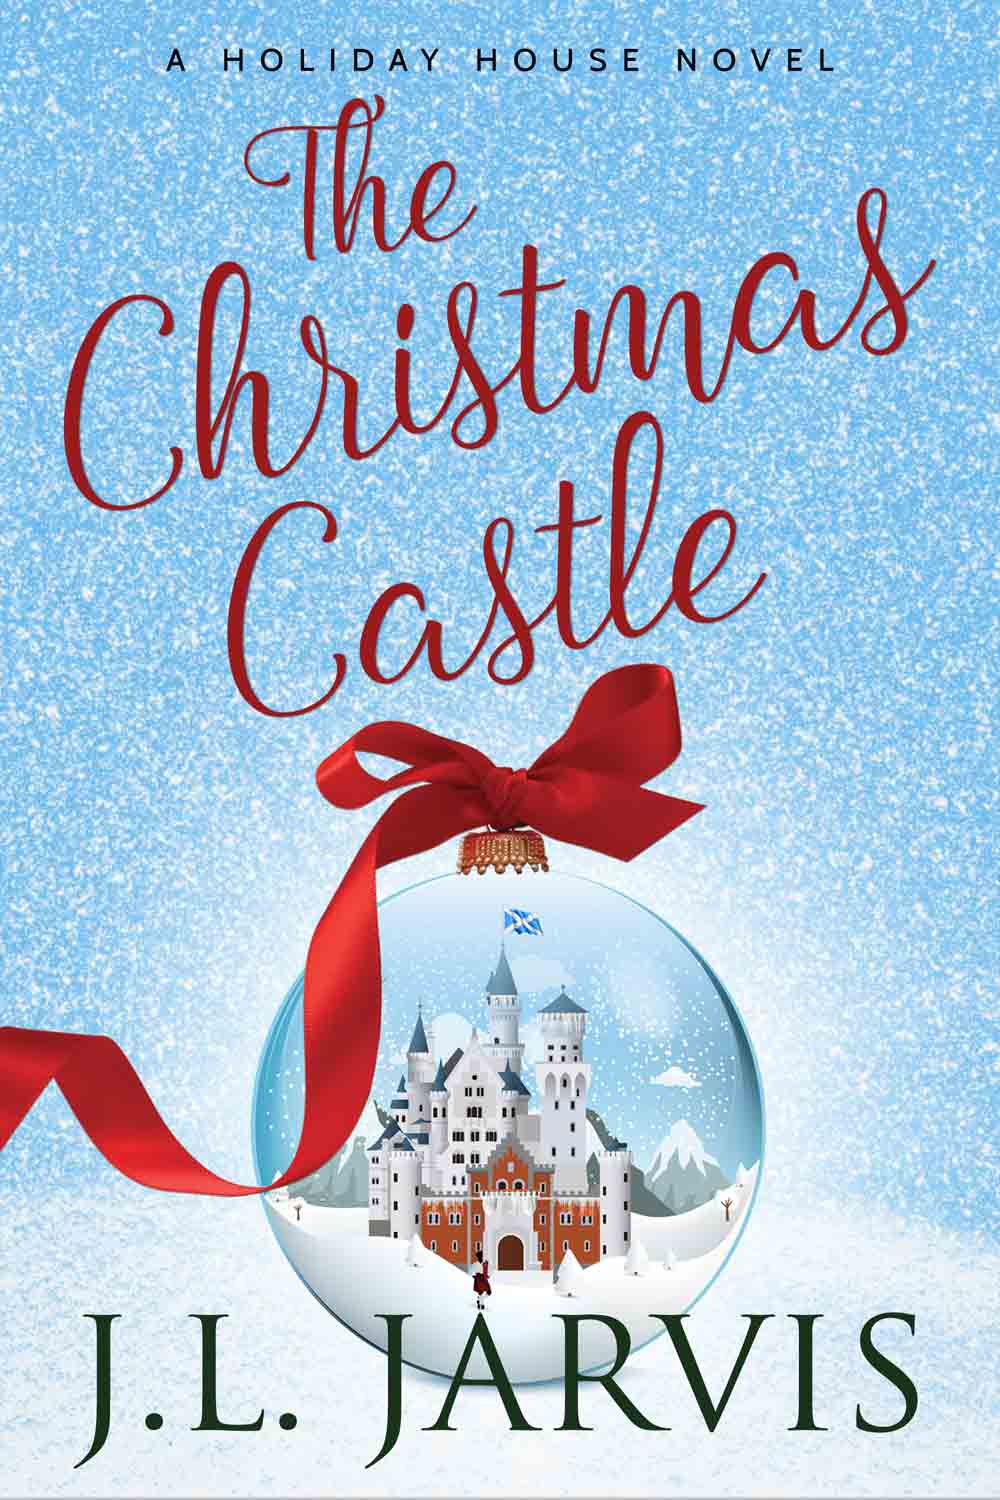 The Christmas Castle